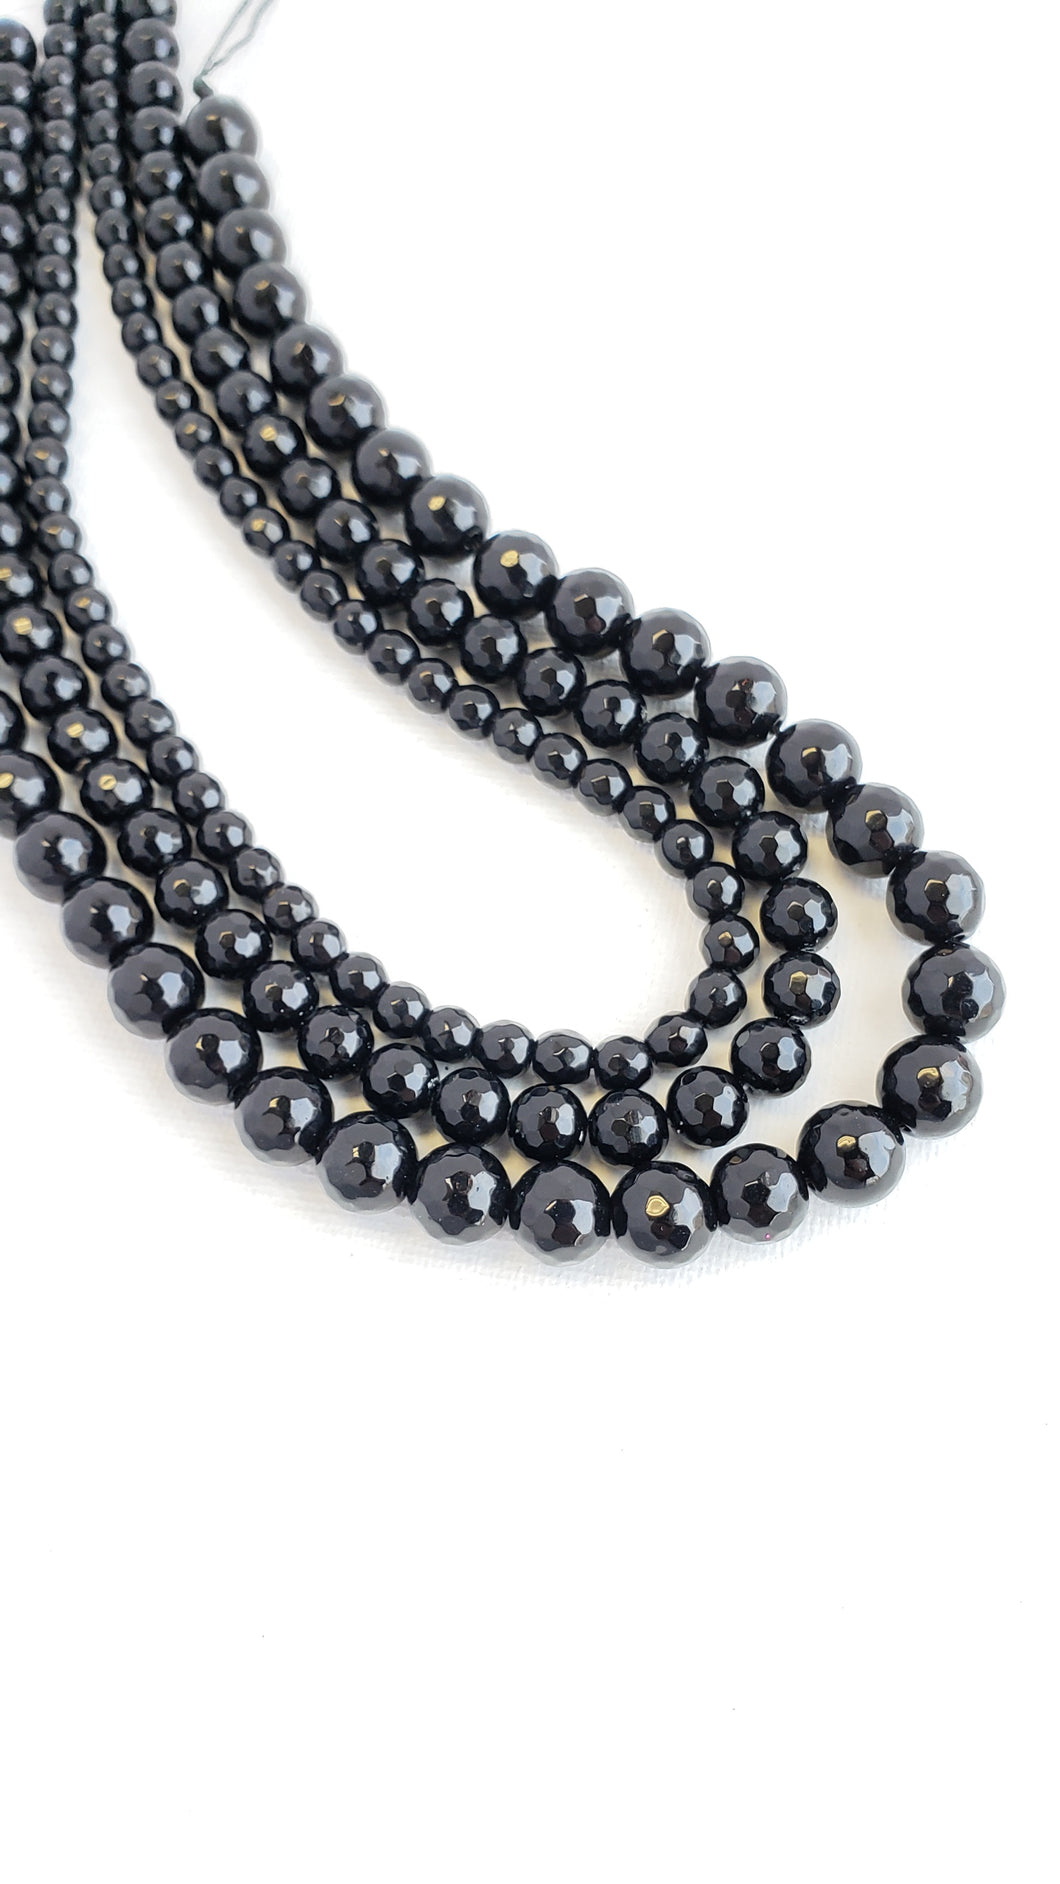 6MM BLACK ONYX FACETED 16